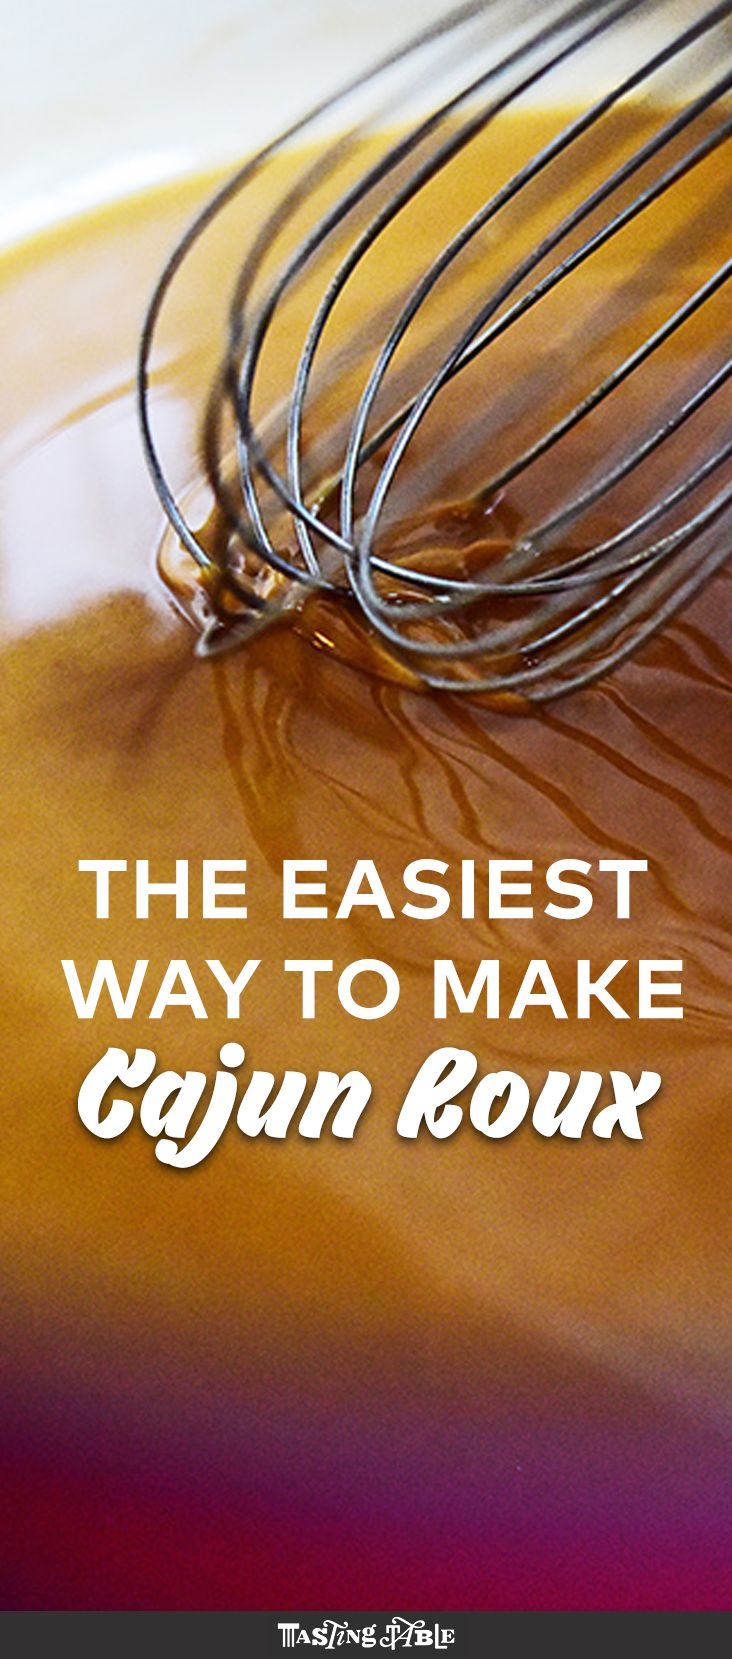 This is the easiest, whisk-free way to making Cajun roux, getting you one step closer to the perfect gumbo.